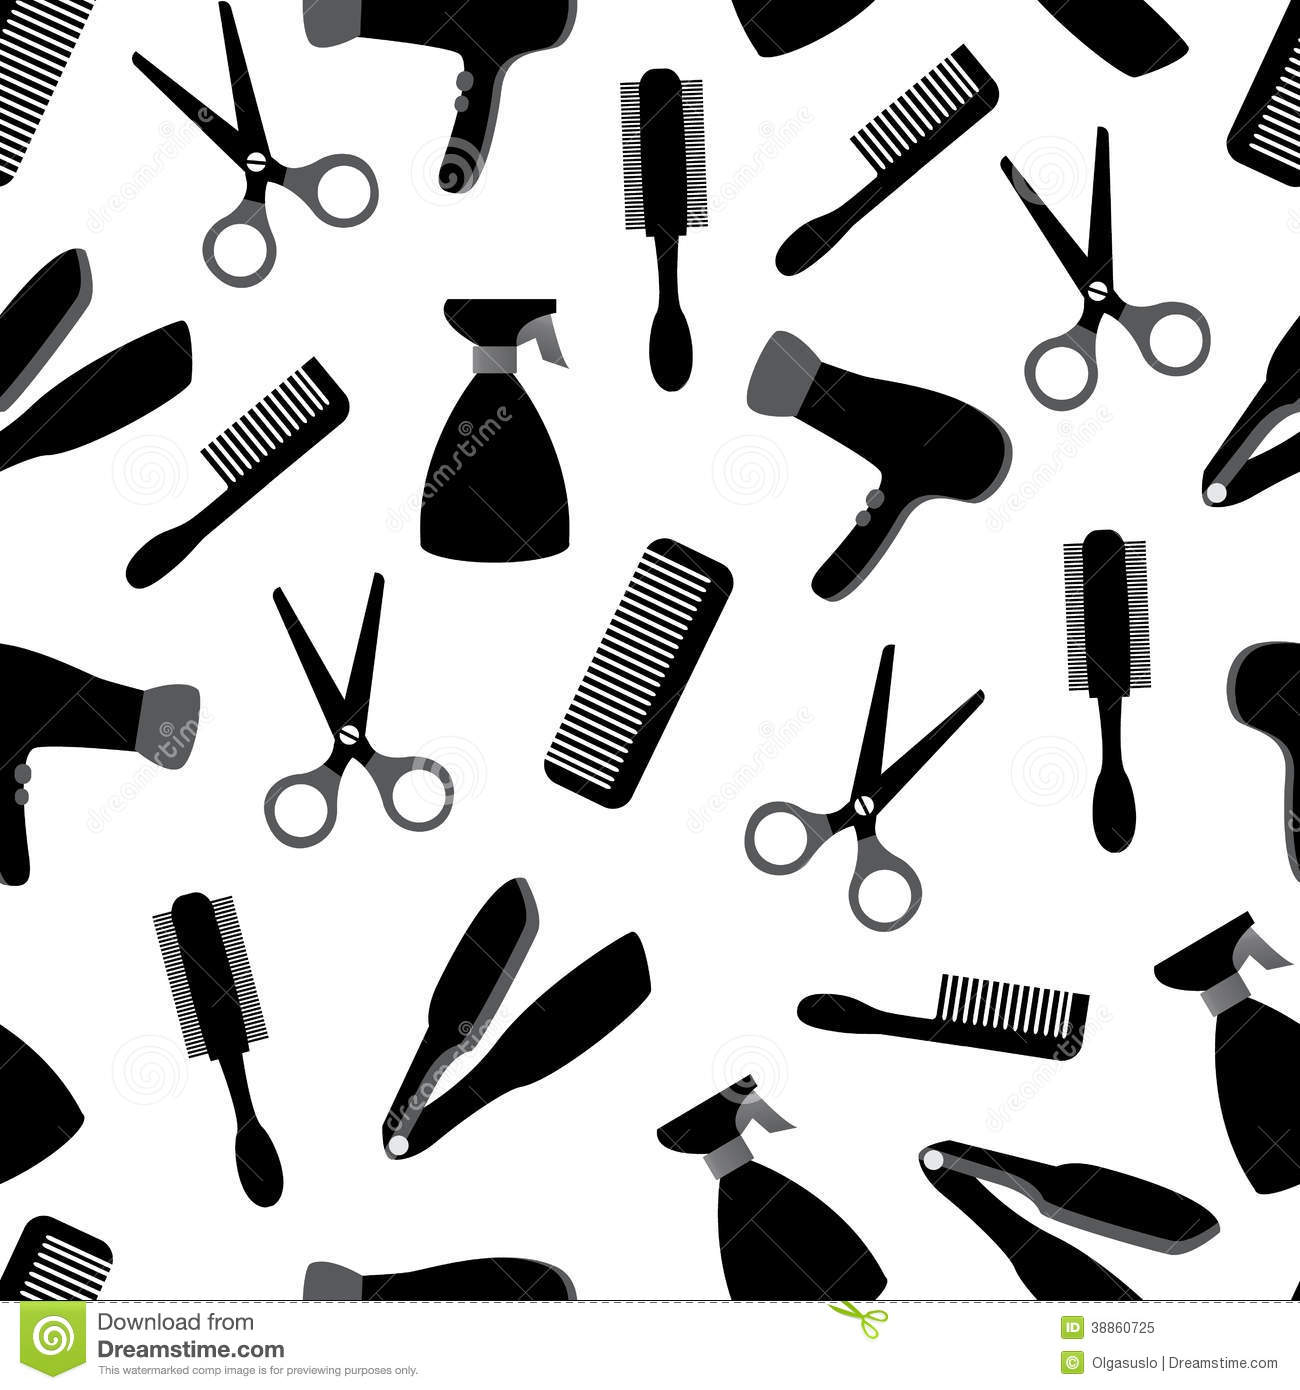 barber background - photo #18